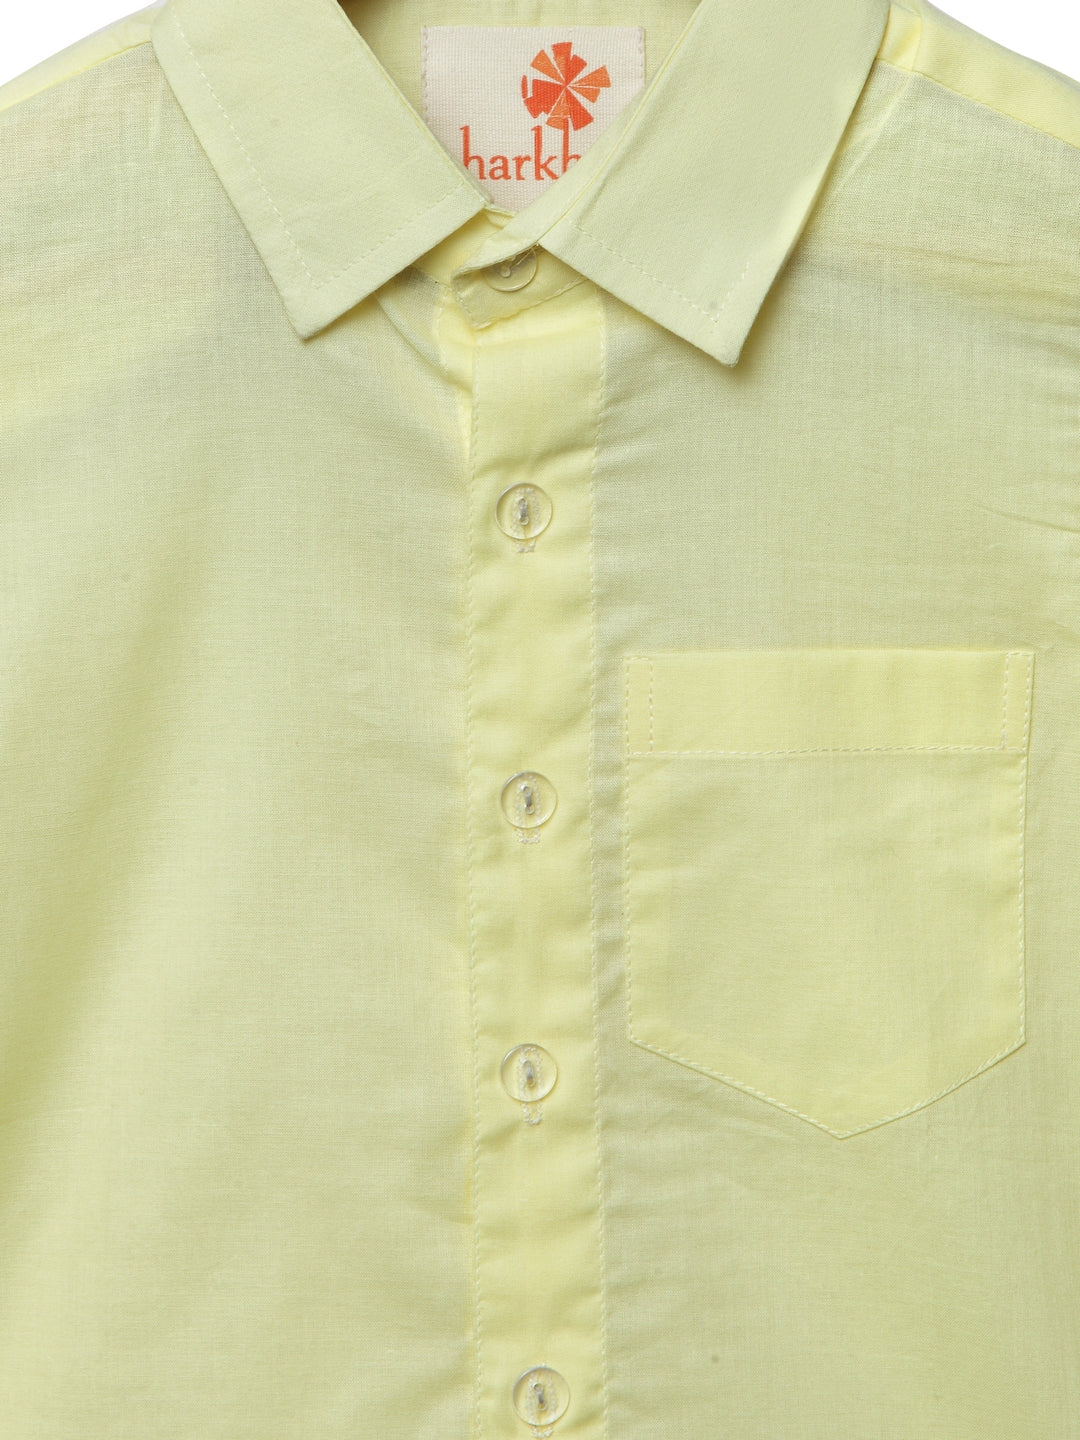 Light Yellow collar shirt